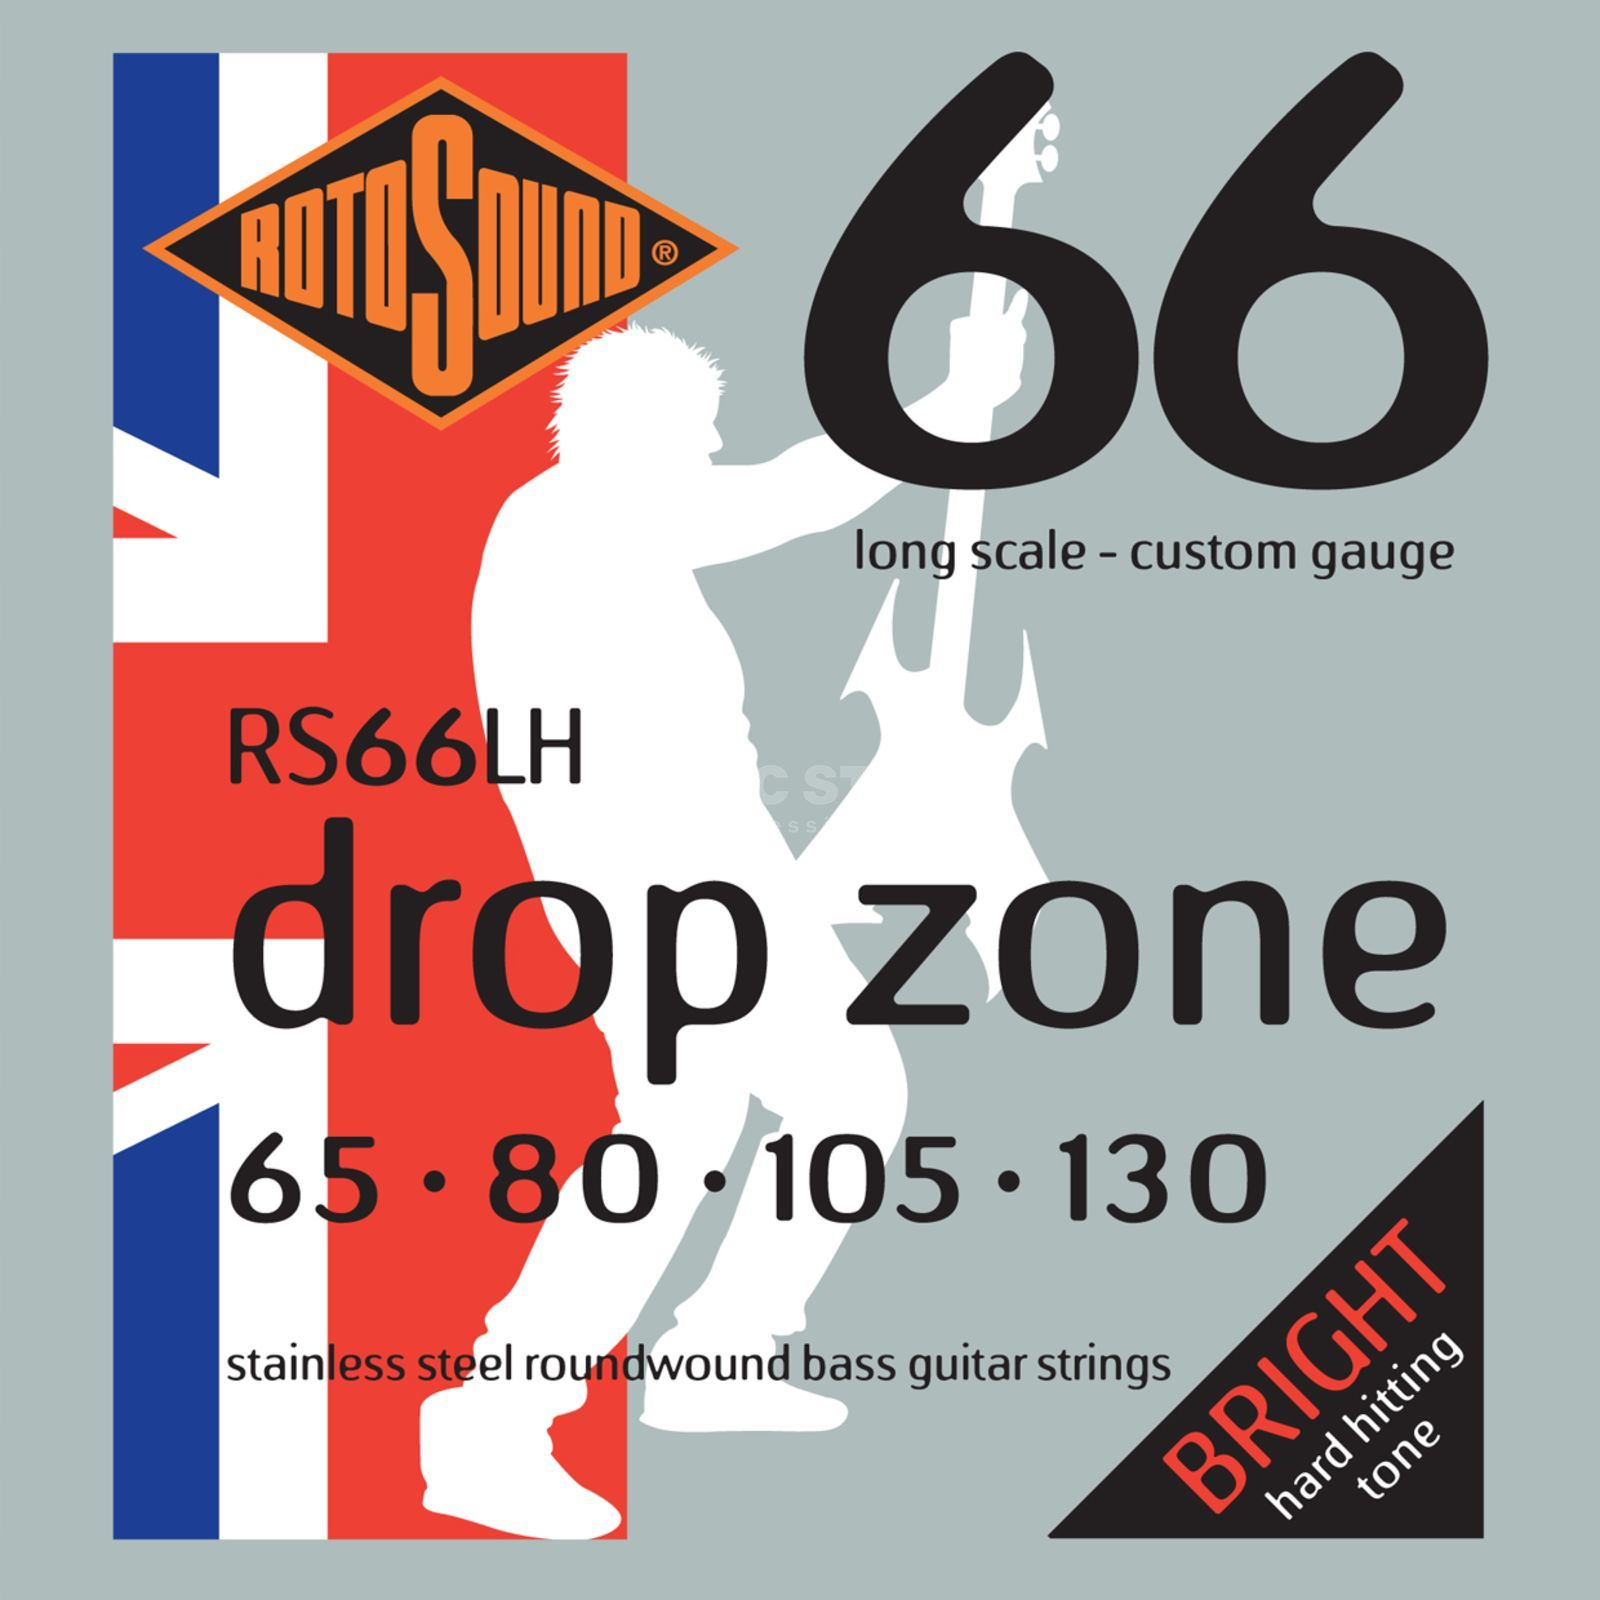 Rotosound Bass Saiten RS66LH, 4er 65-130 Drop Zone 66, Stainless Steel Produktbild